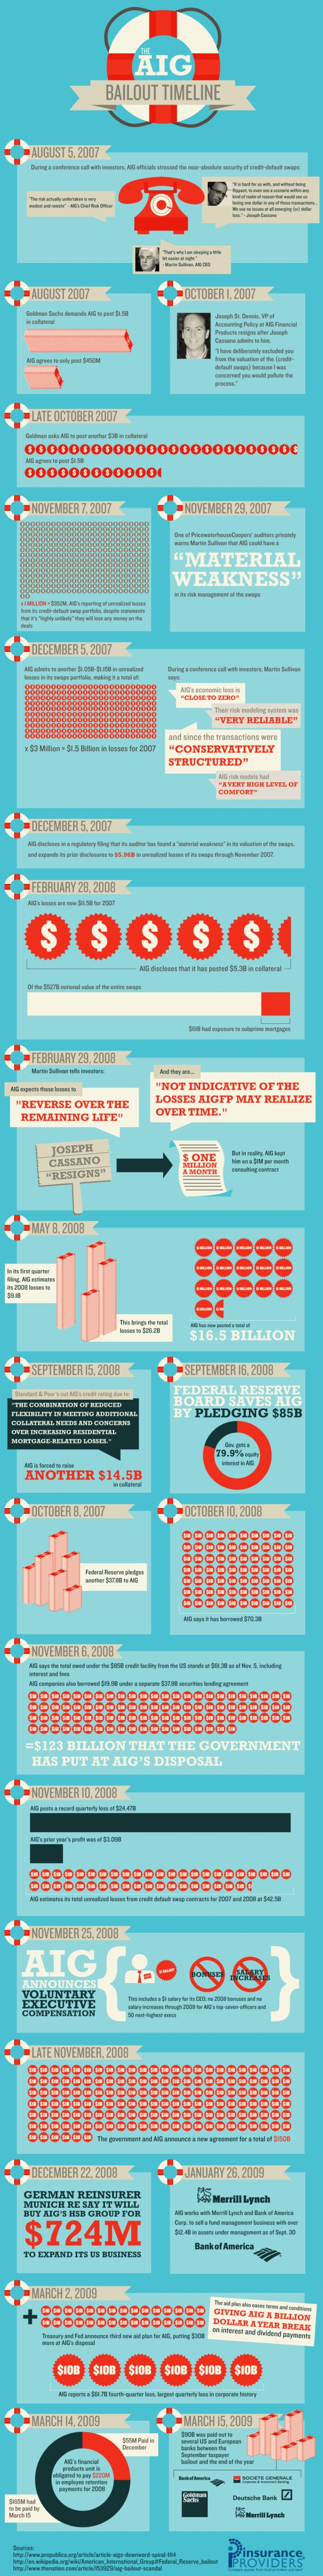 Infographic of Timeline of AIG Bailouts